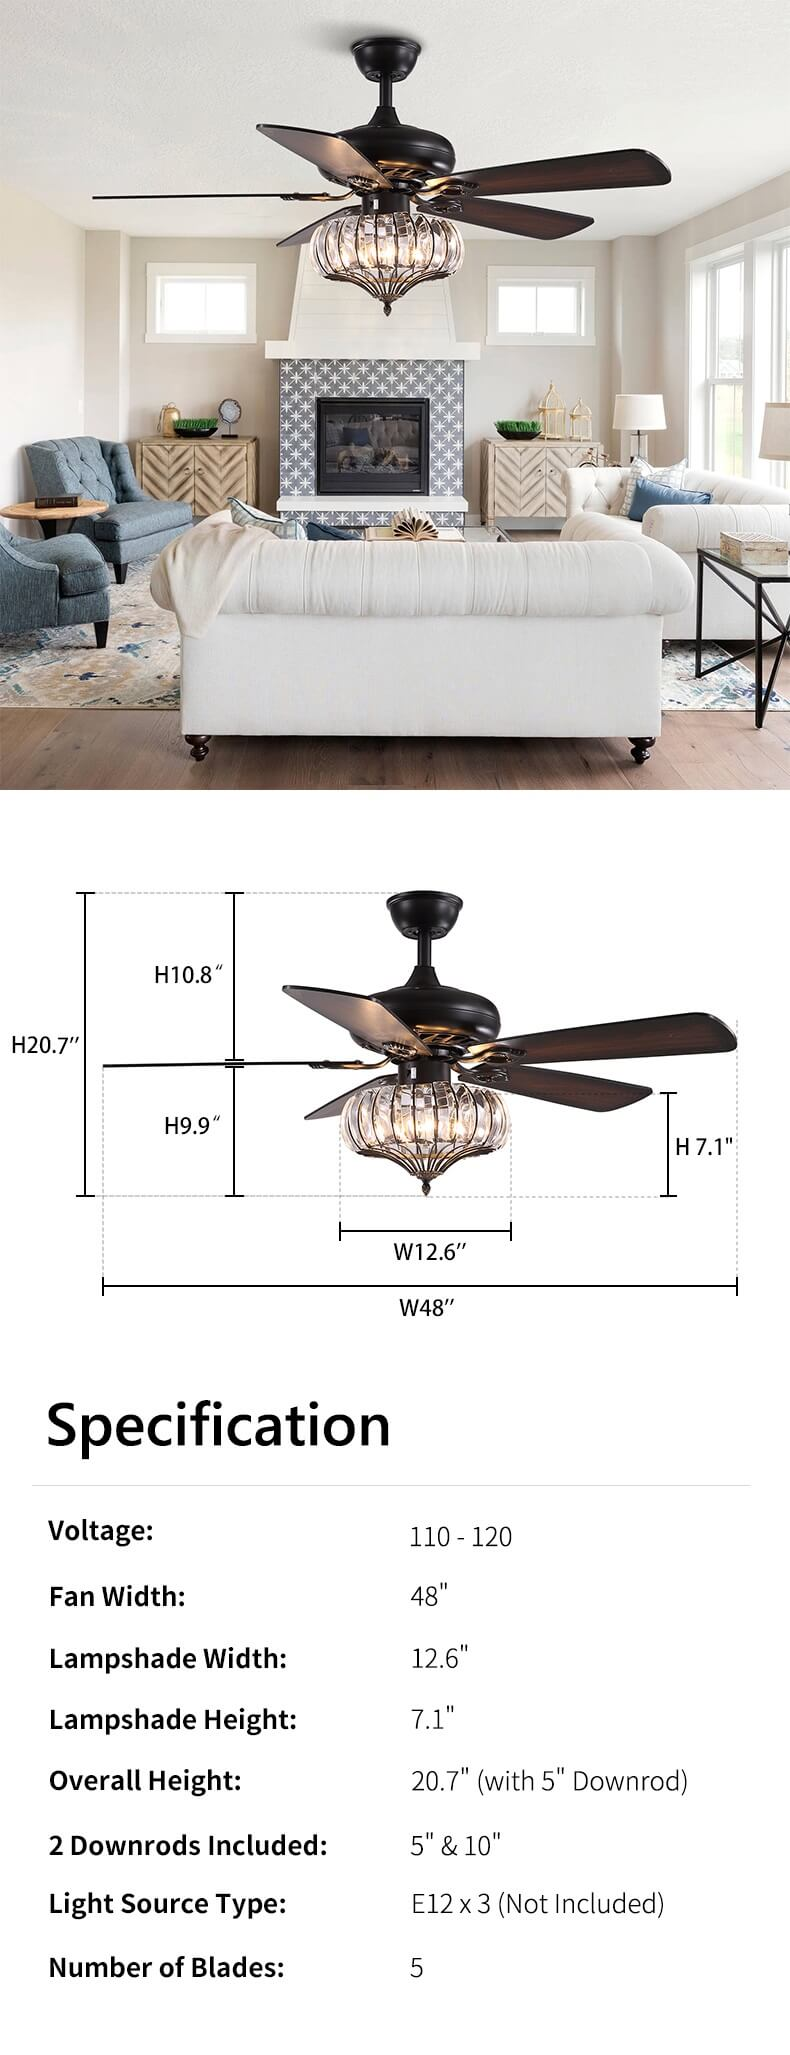 Reversible Wood Blades Ceiling Fan Dimension